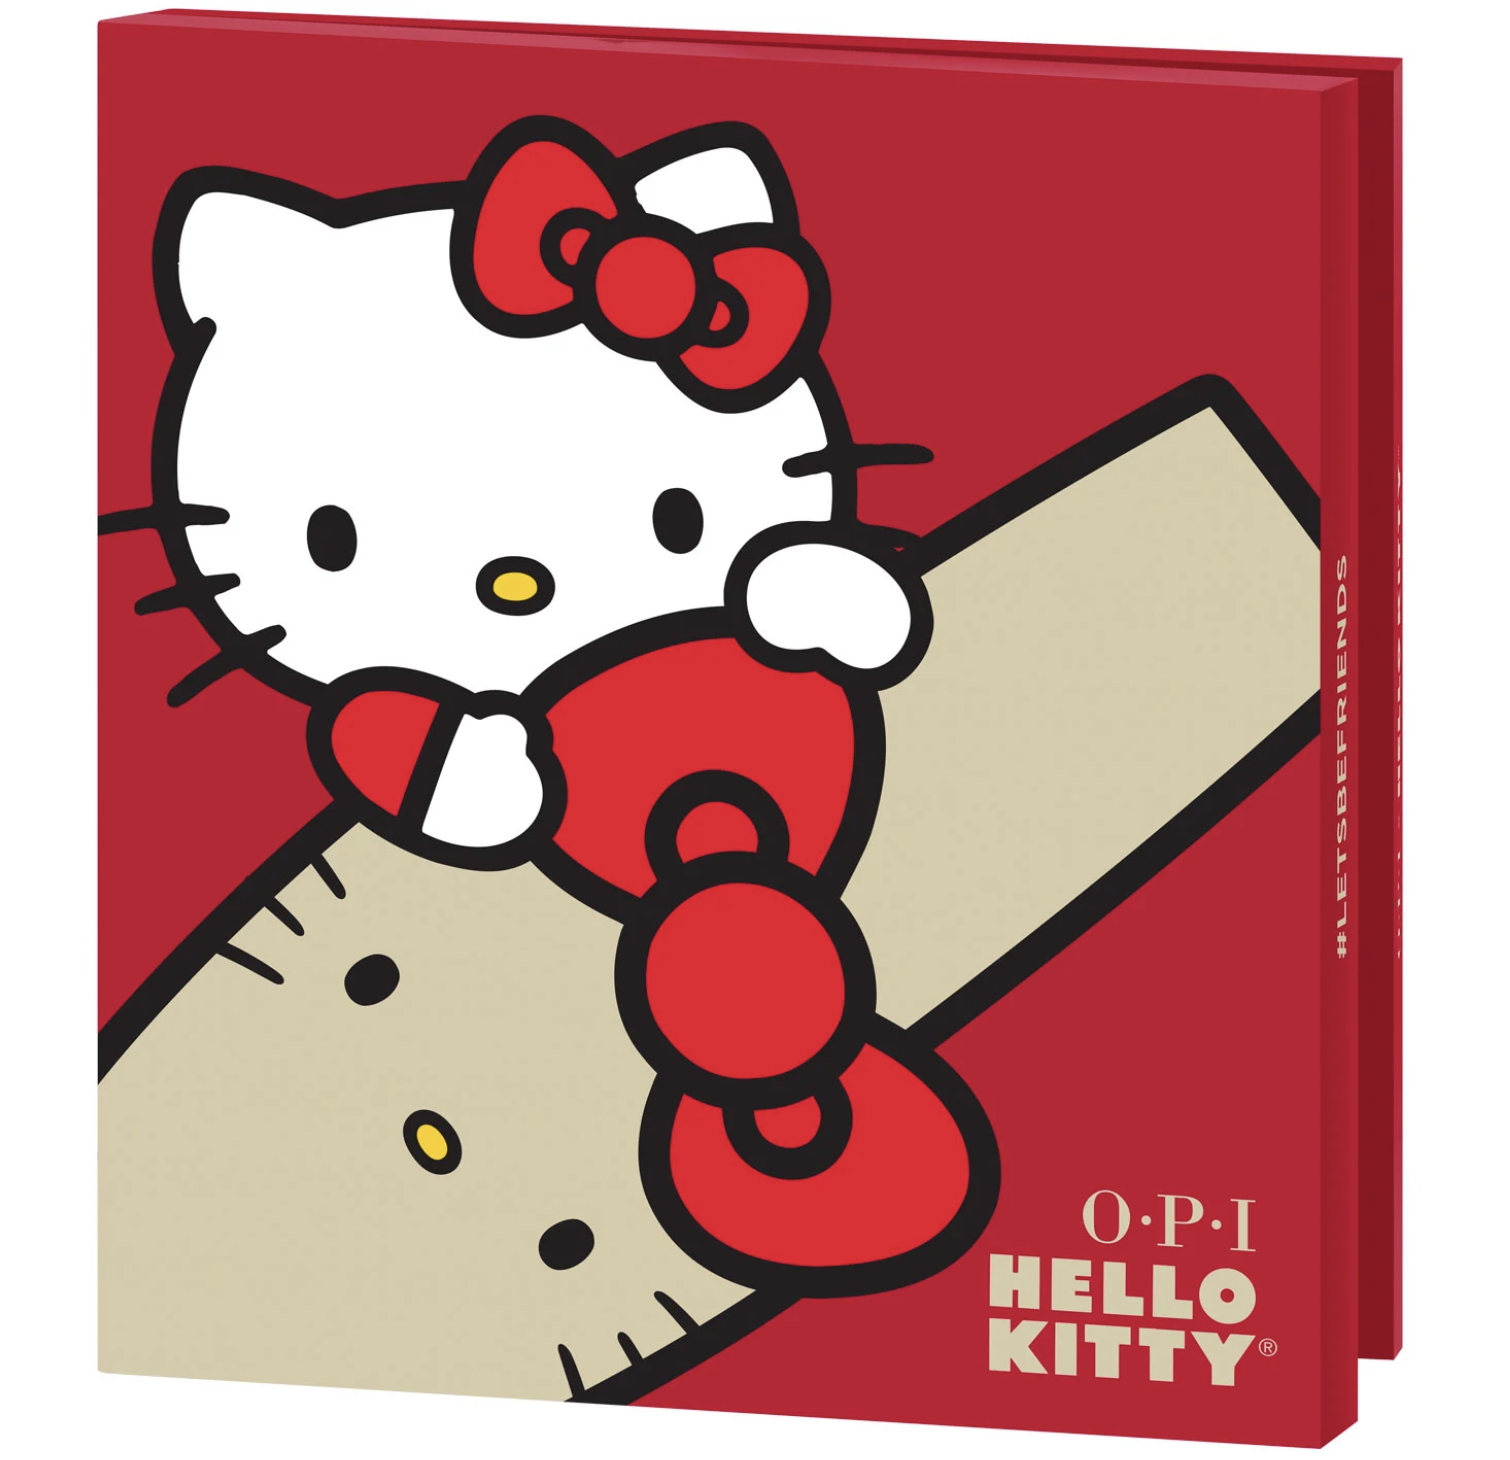 Hello Kitty OPI Advent Calendar 2019